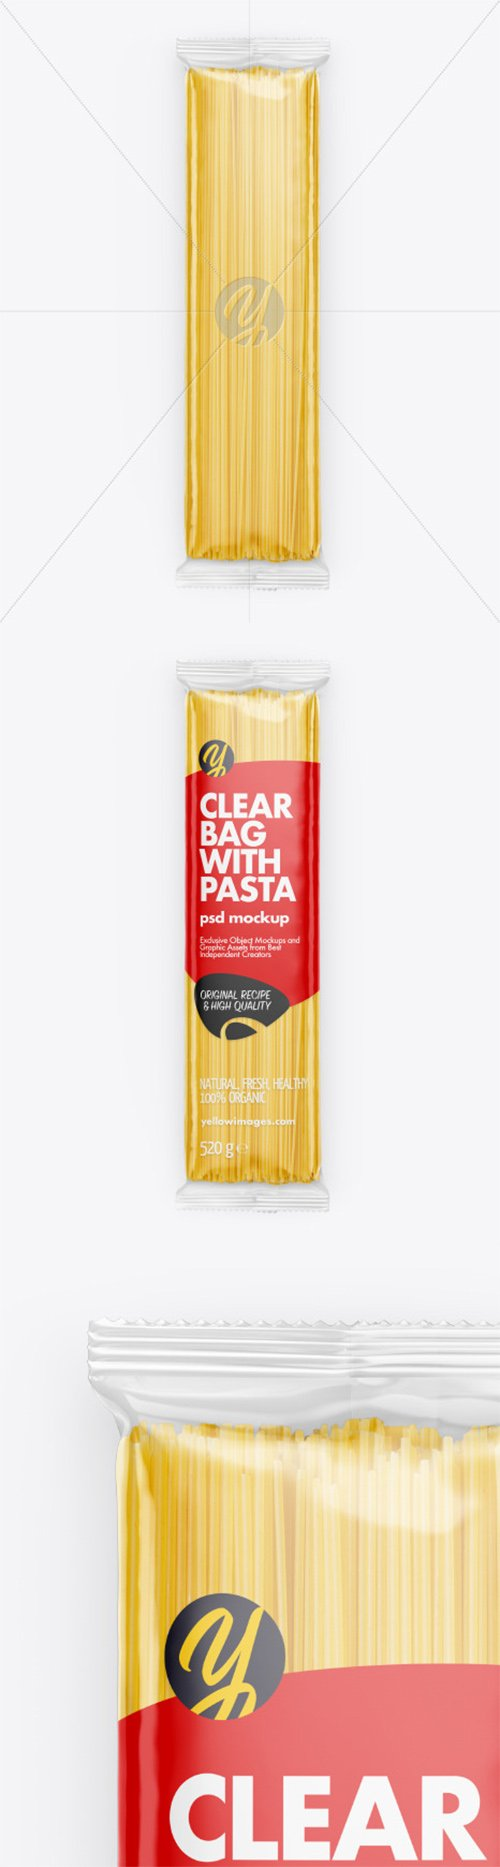 Clear Bag With Pasta Mockup 65610